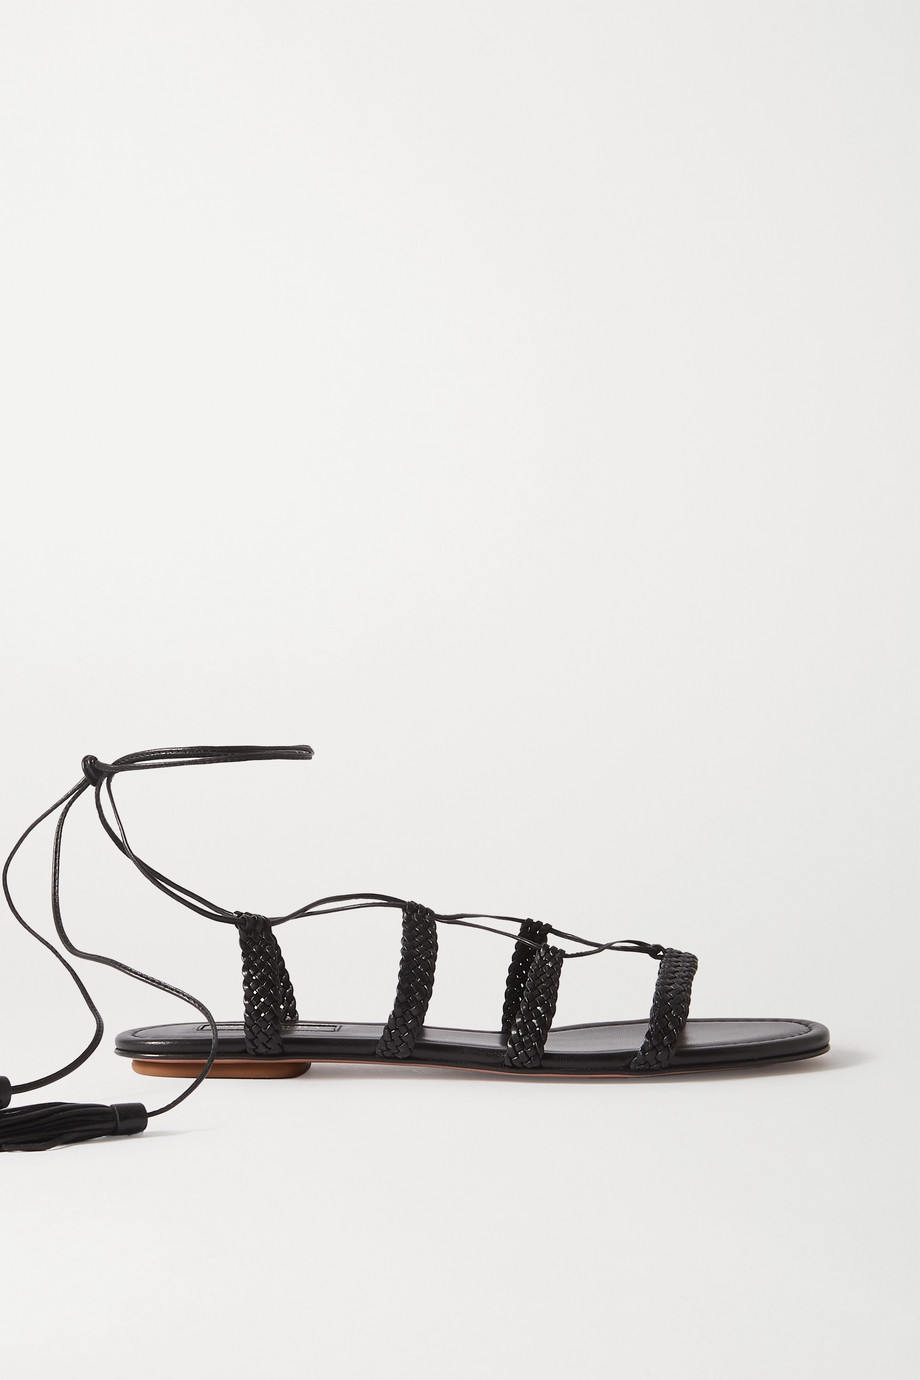 Aquazzura Stromboli braided leather sandals